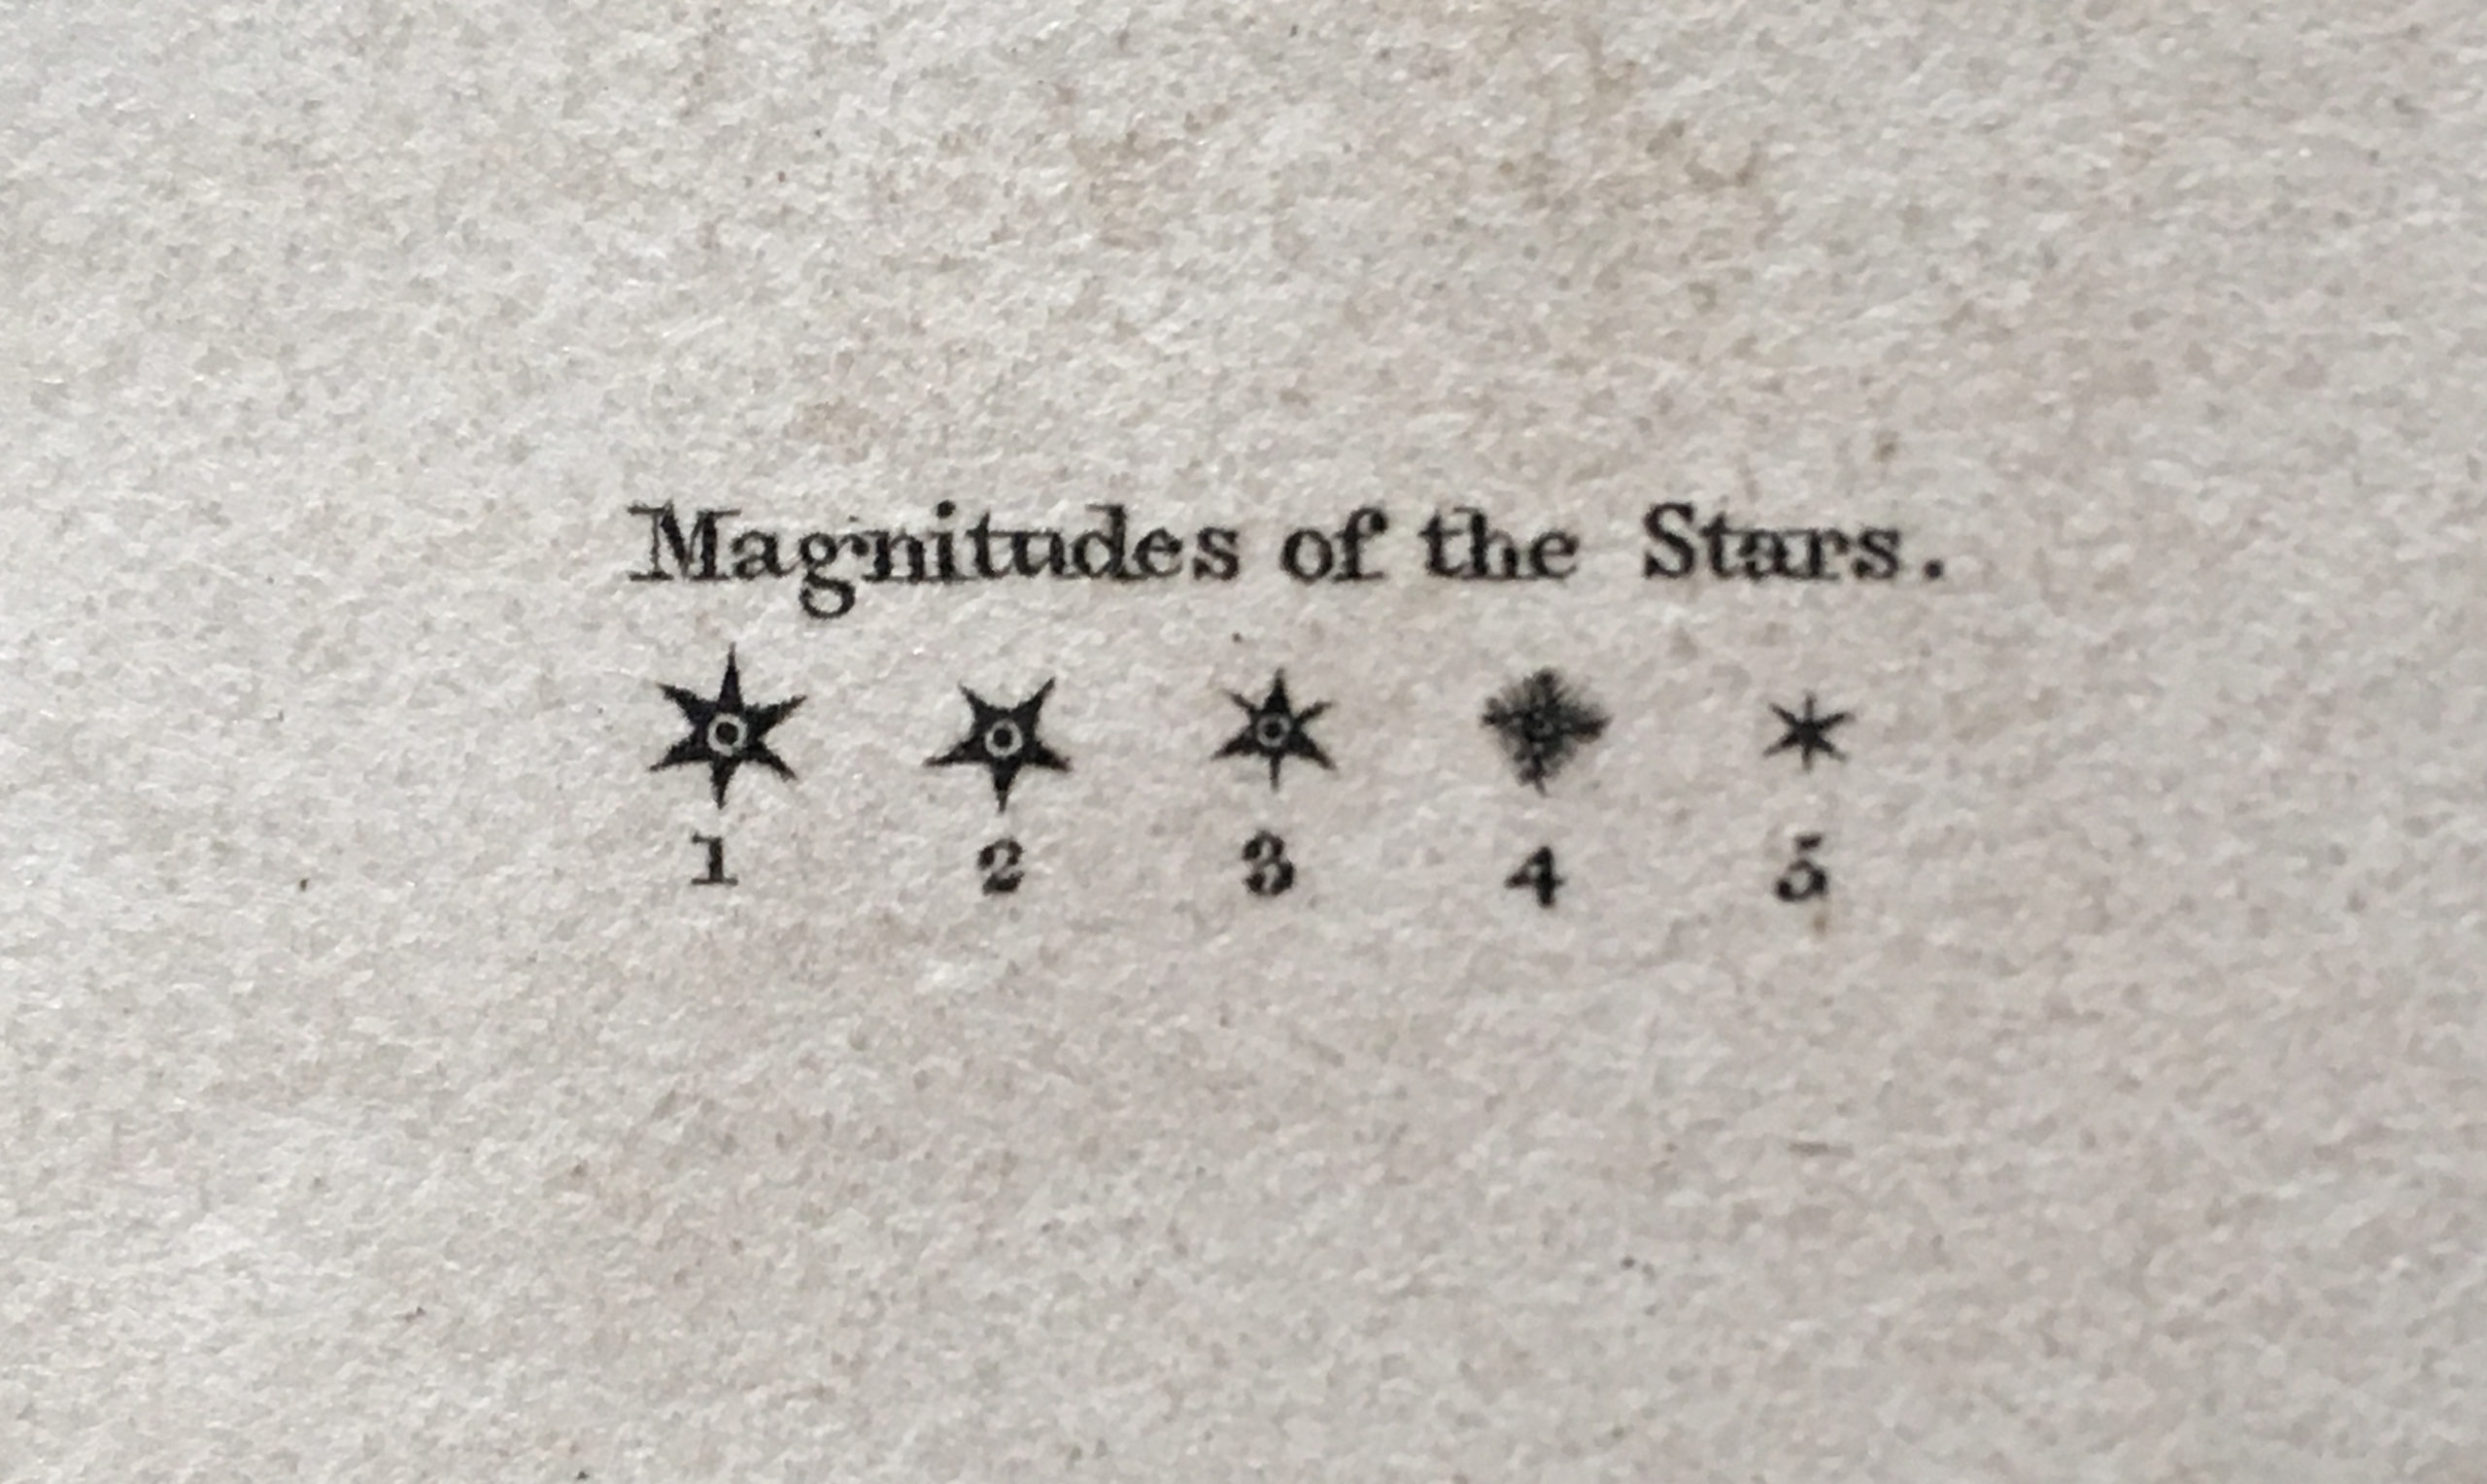 Image of text from old book with 5 stars and the words 'Magnitudes of the Stars.' printed.